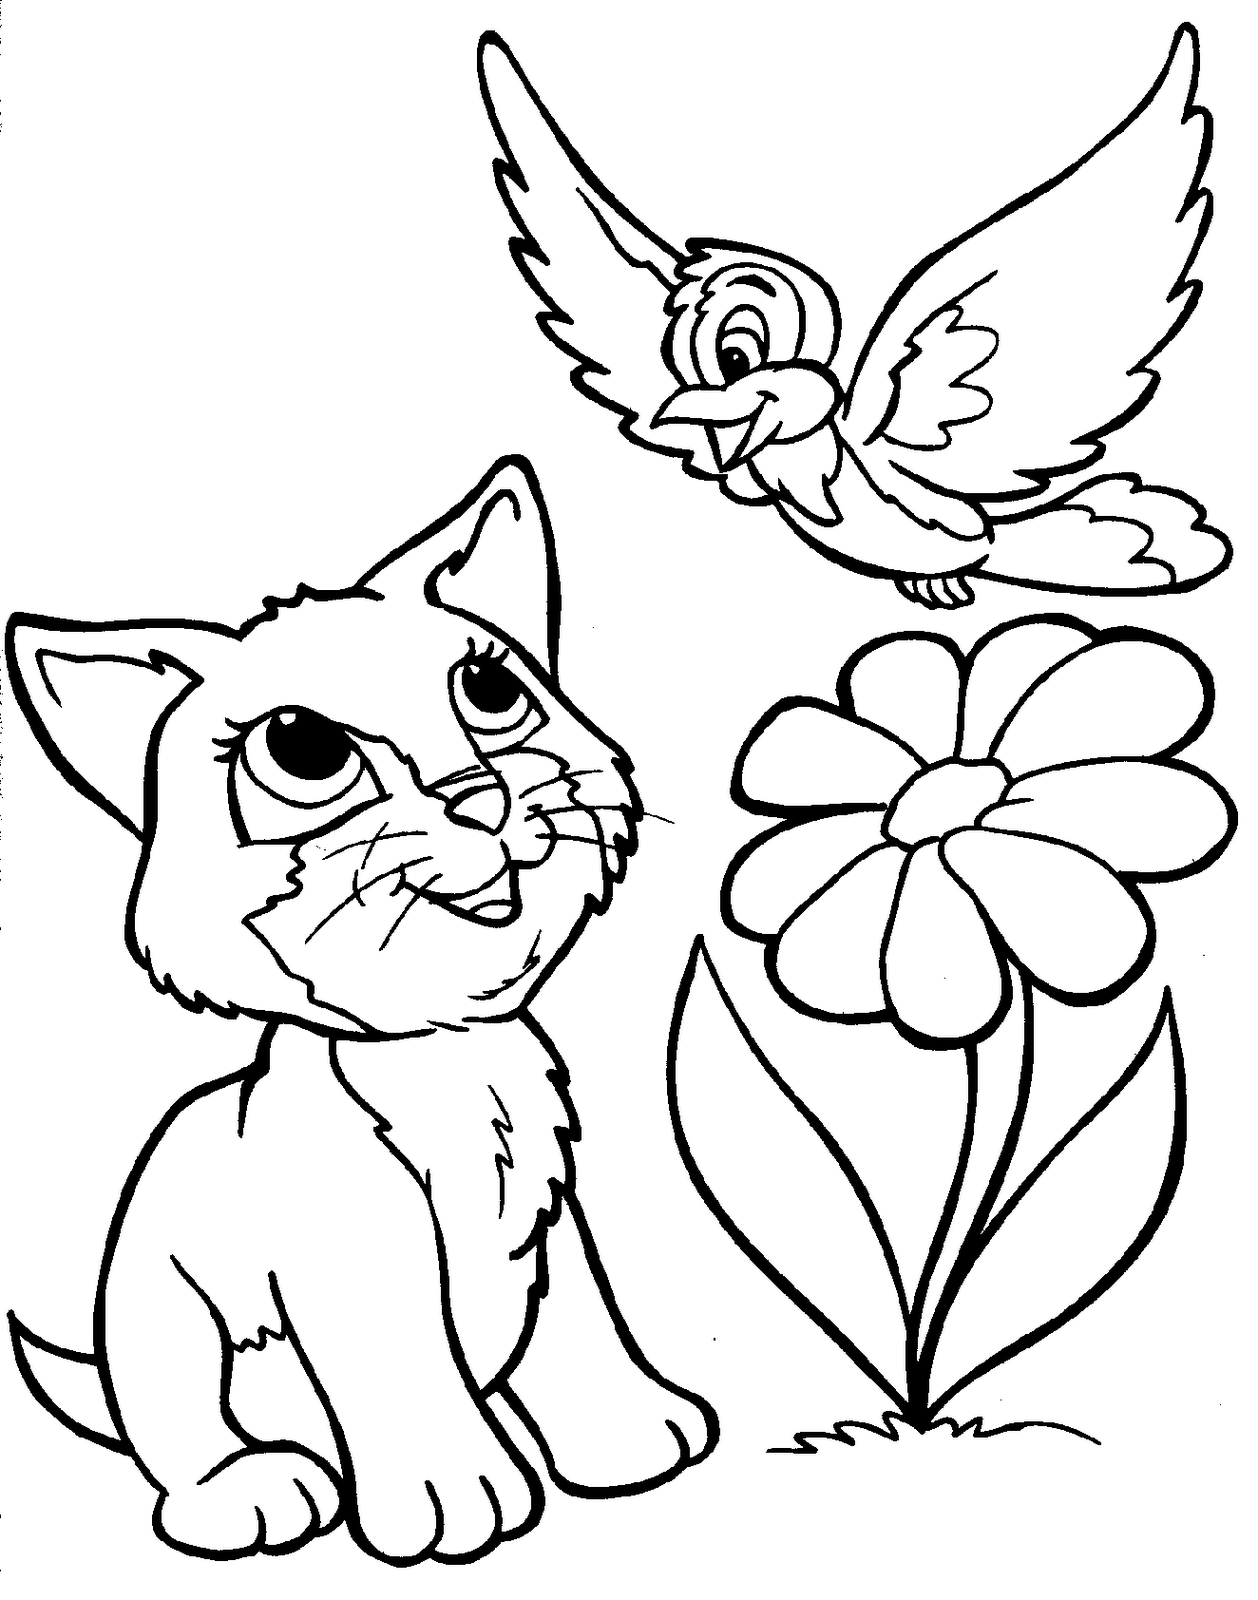 animal coloring pages free all animals coloring pages download and print for free coloring animal free pages